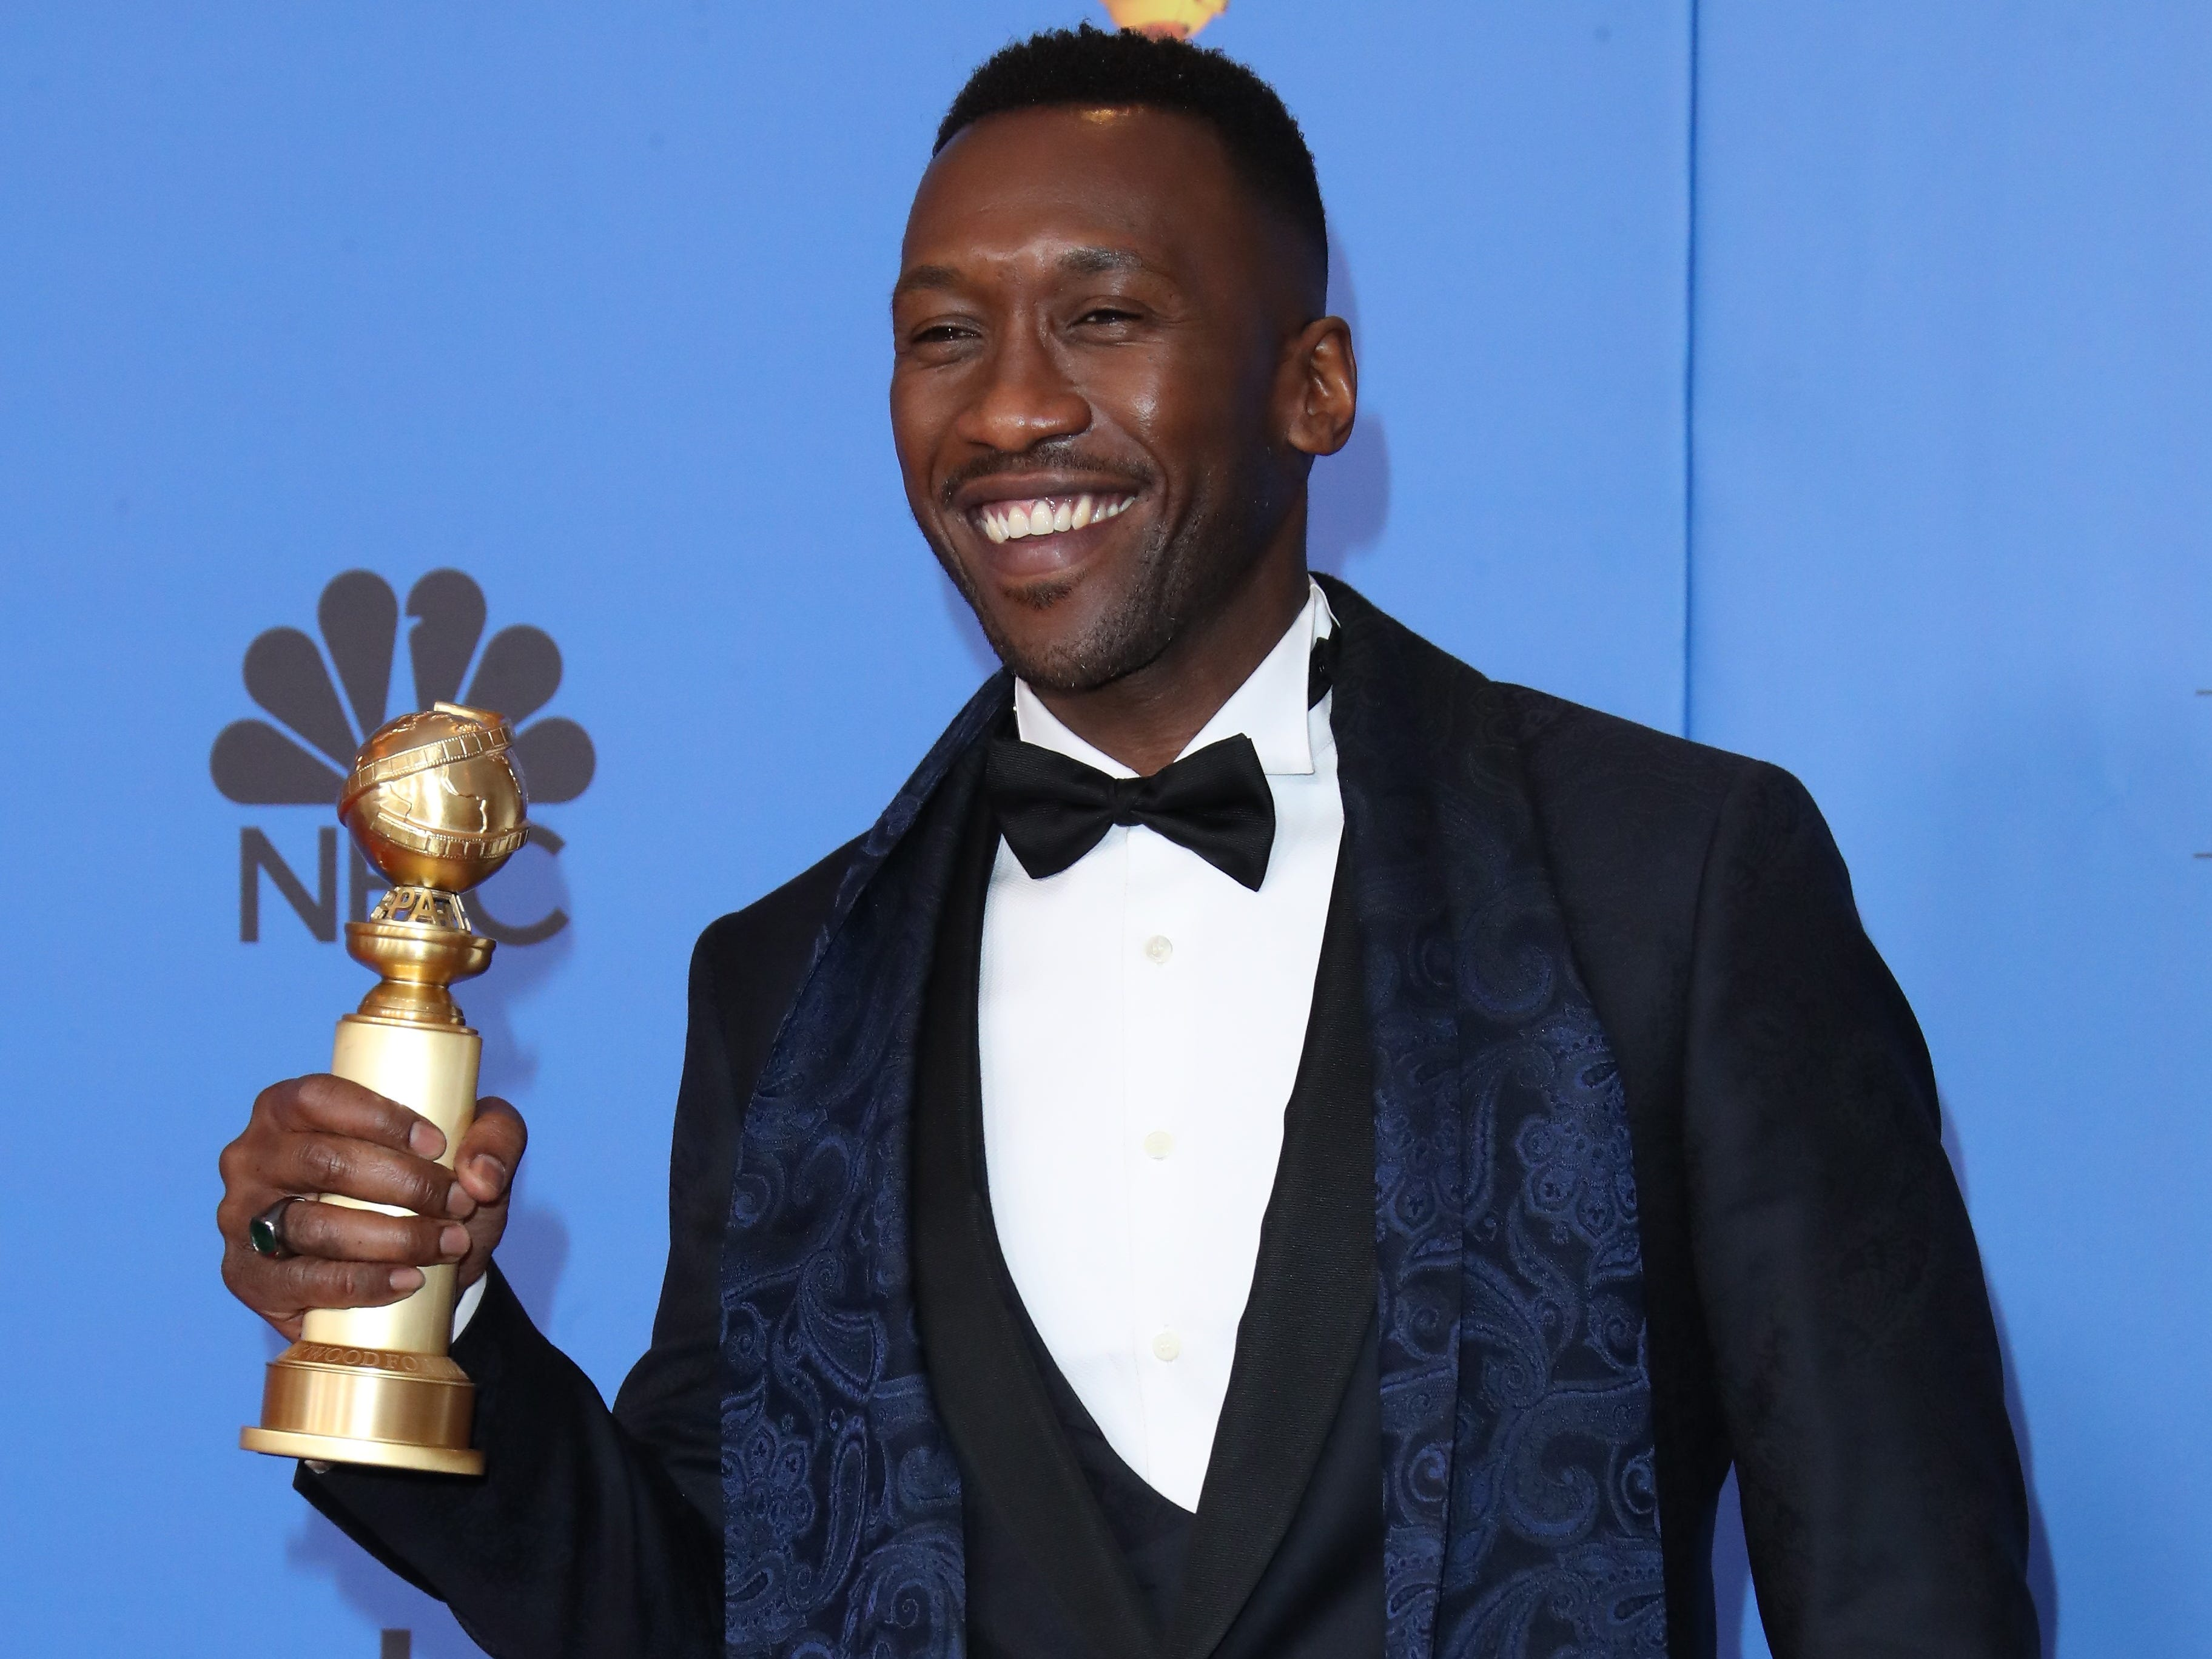 Here's why Mahershala Ali is considered 'Green Book' supporting actor